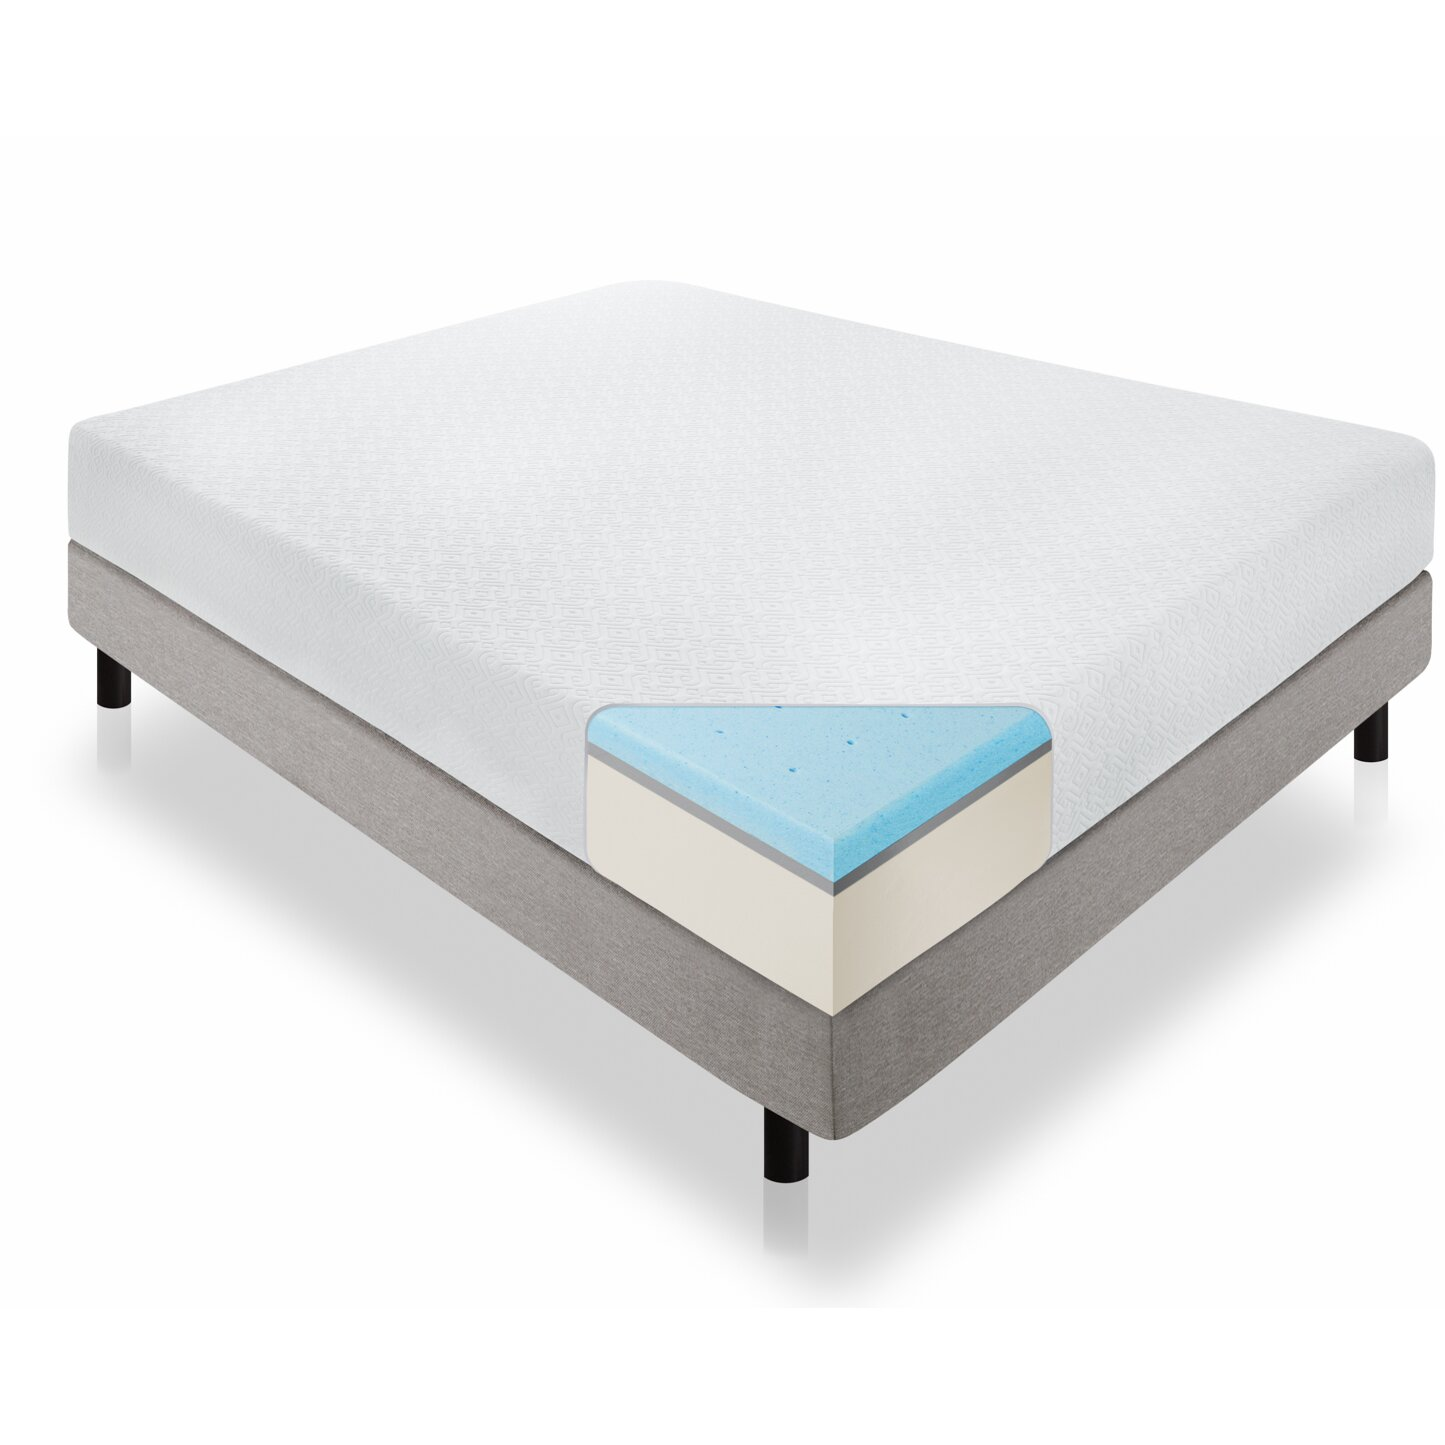 "Lucid 12"" Gel Memory Foam Plush Viscoelastic Mattress"